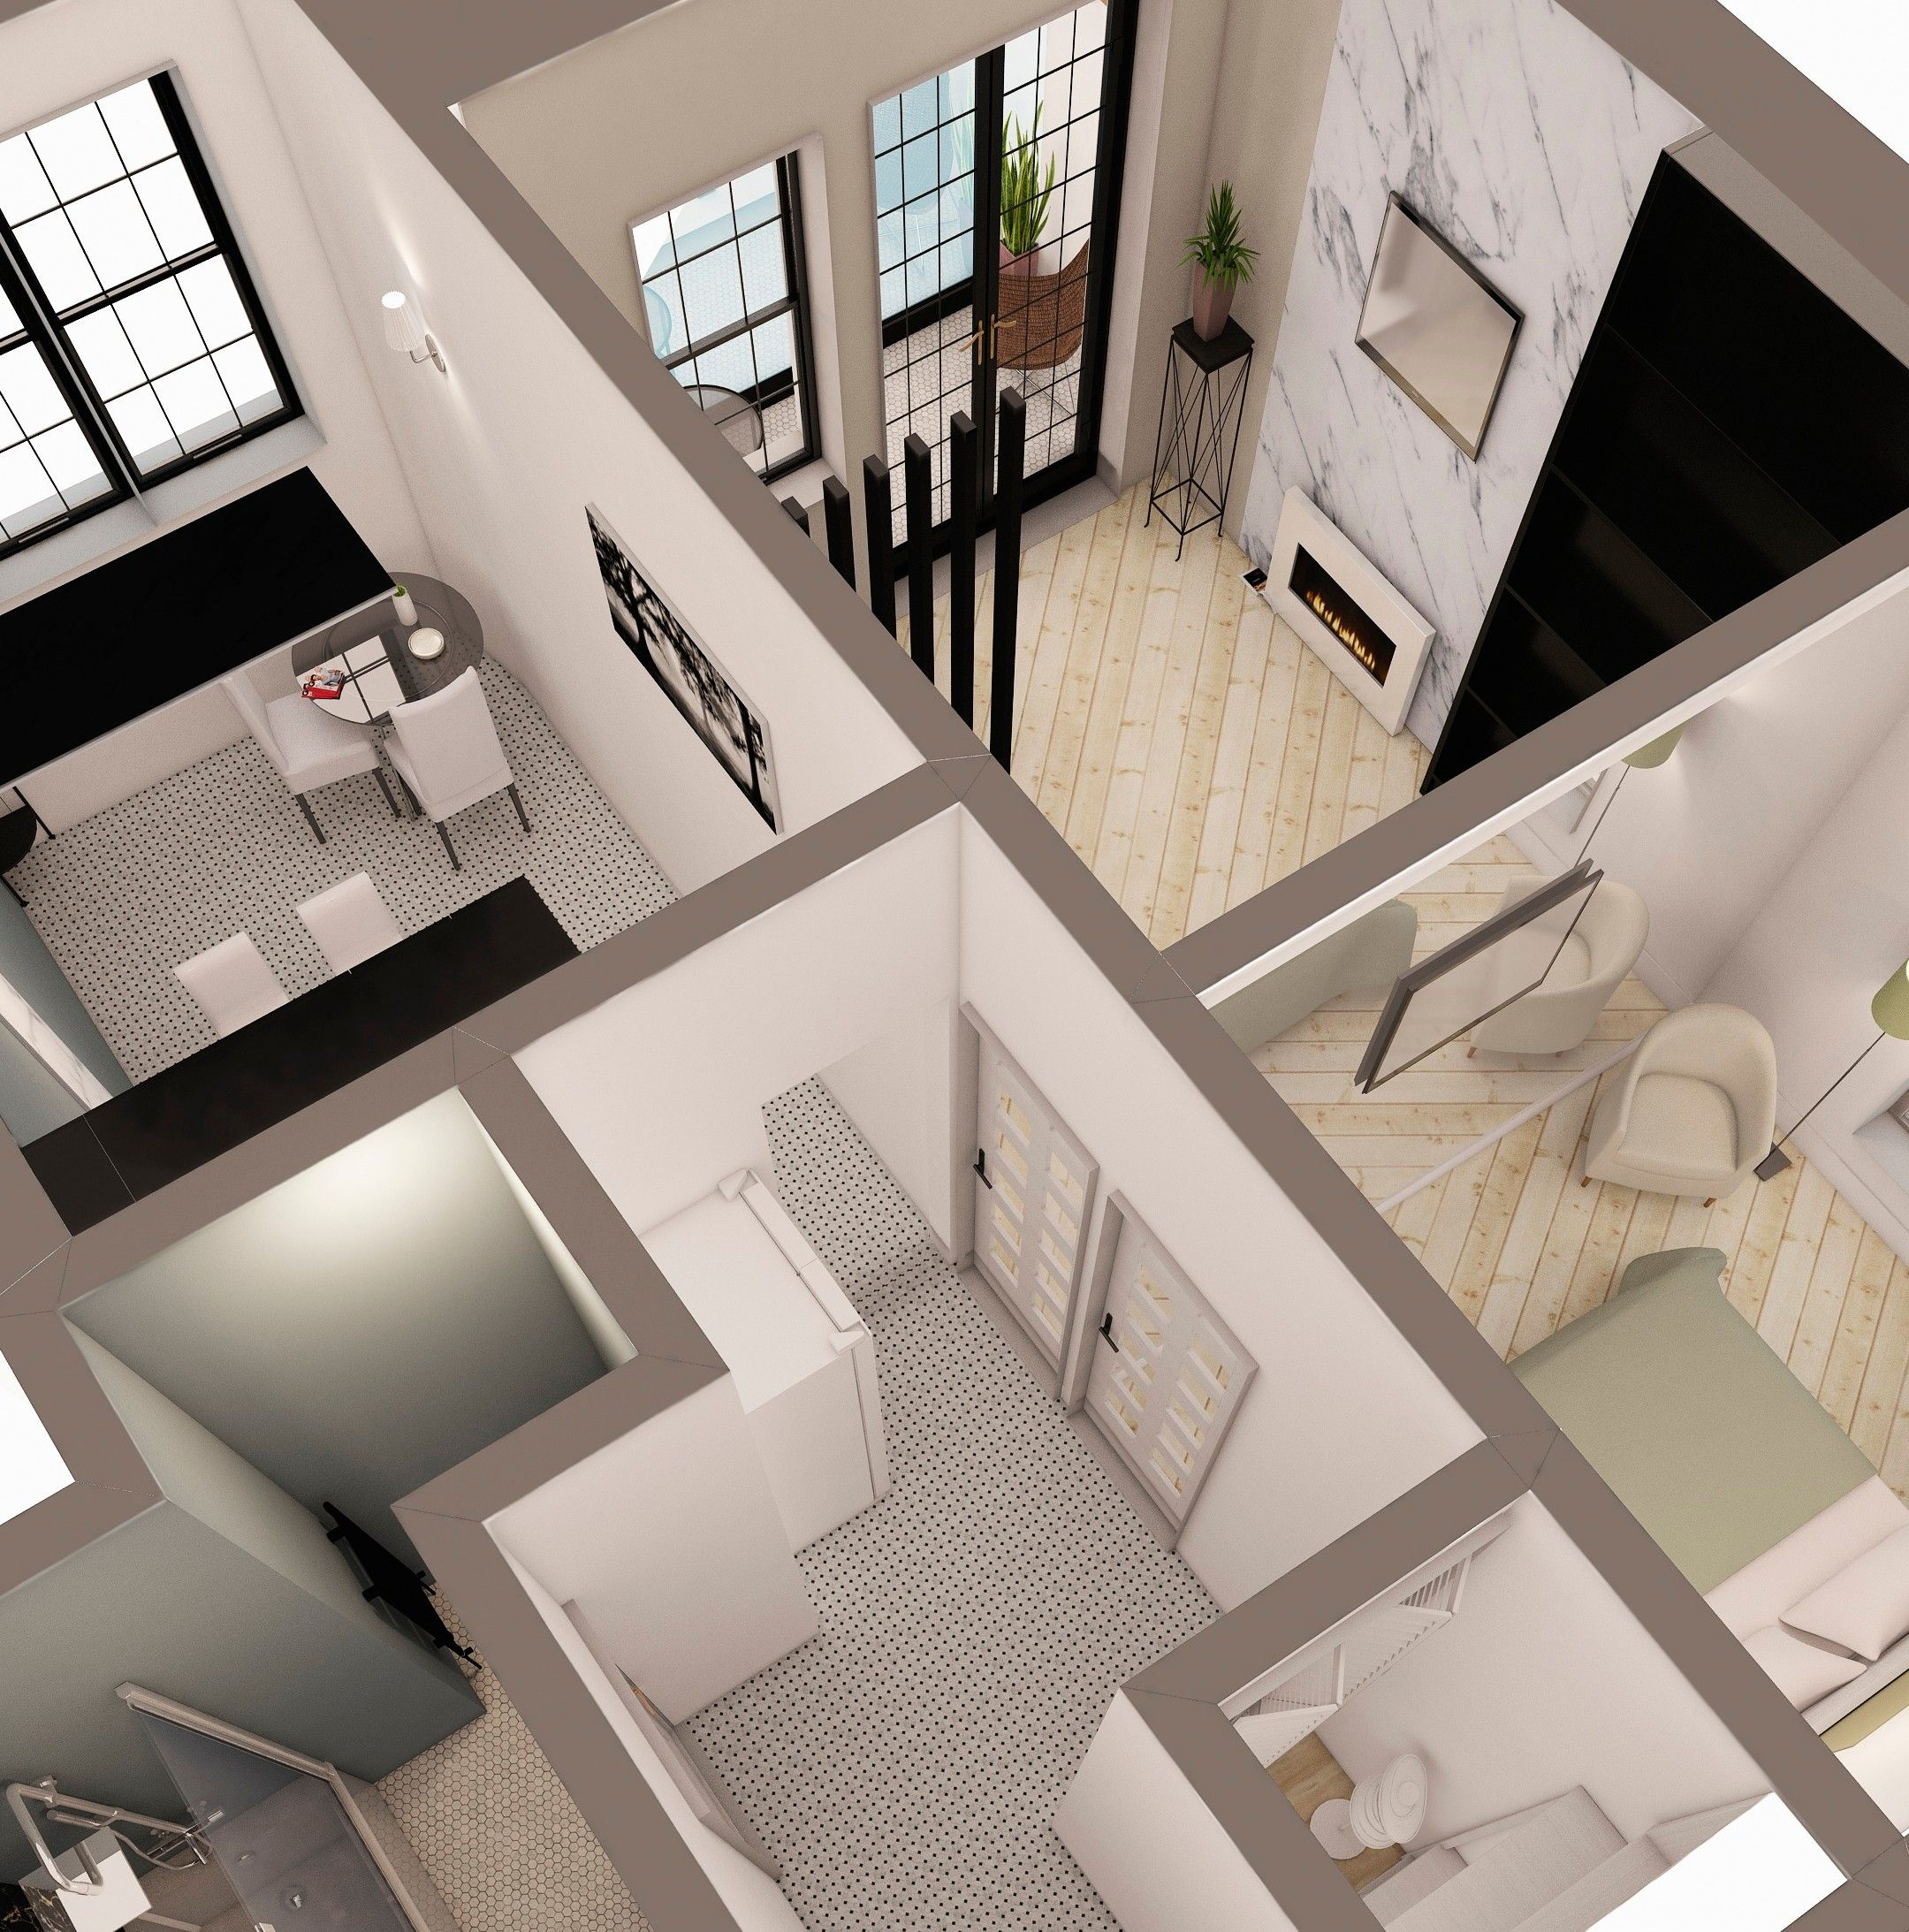 Pin By Meili On Iso Iso Room Layout Planner Living Room Layout Planner Online Interior Design